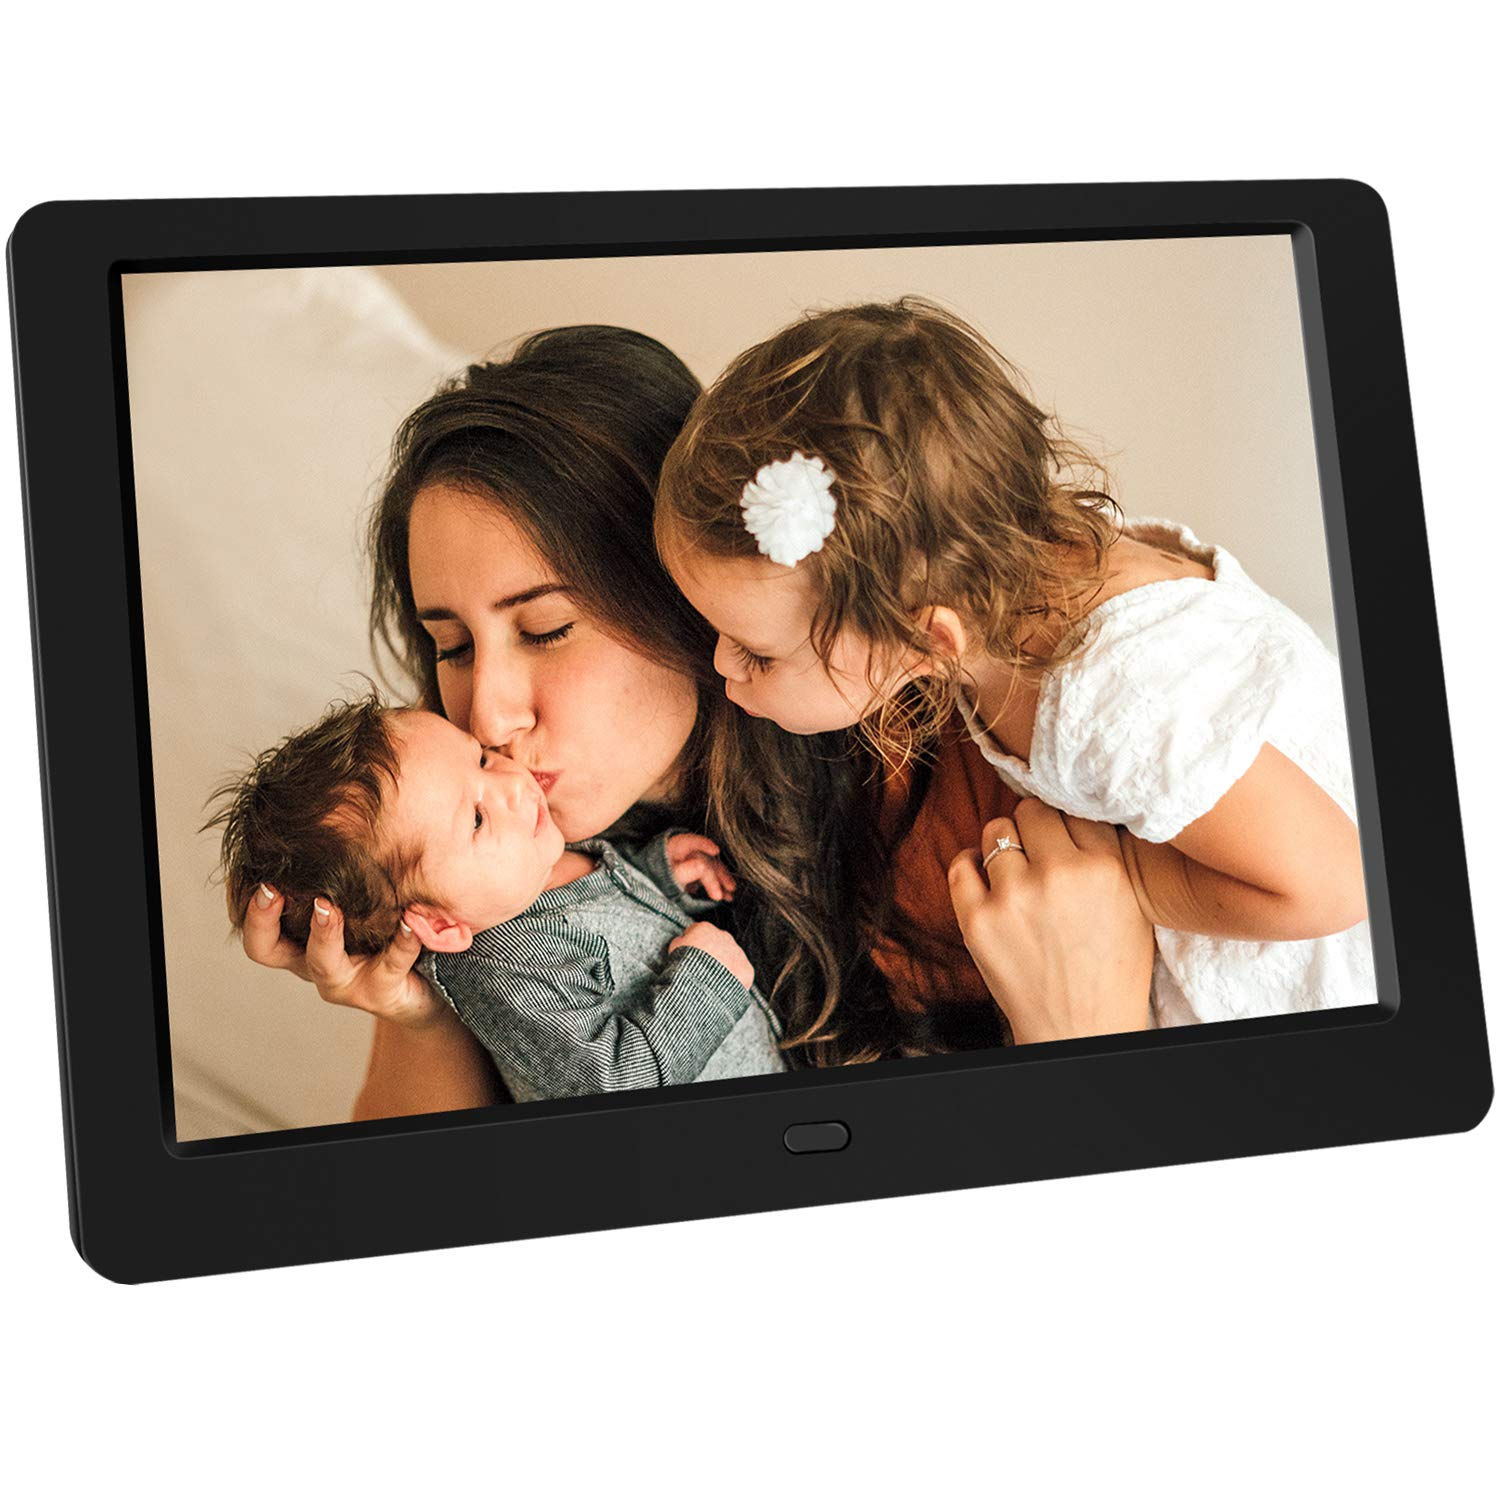 Tenswall 10 Inch Digital Photo Frame Upgraded HD1280x800,16:10 Digital Picture Frame Full IPS Display Photo/Music/Video/Calendar, Auto On/Off Timer, Support 32GB USB Drives/SD Card,Remote Control by Tenswall